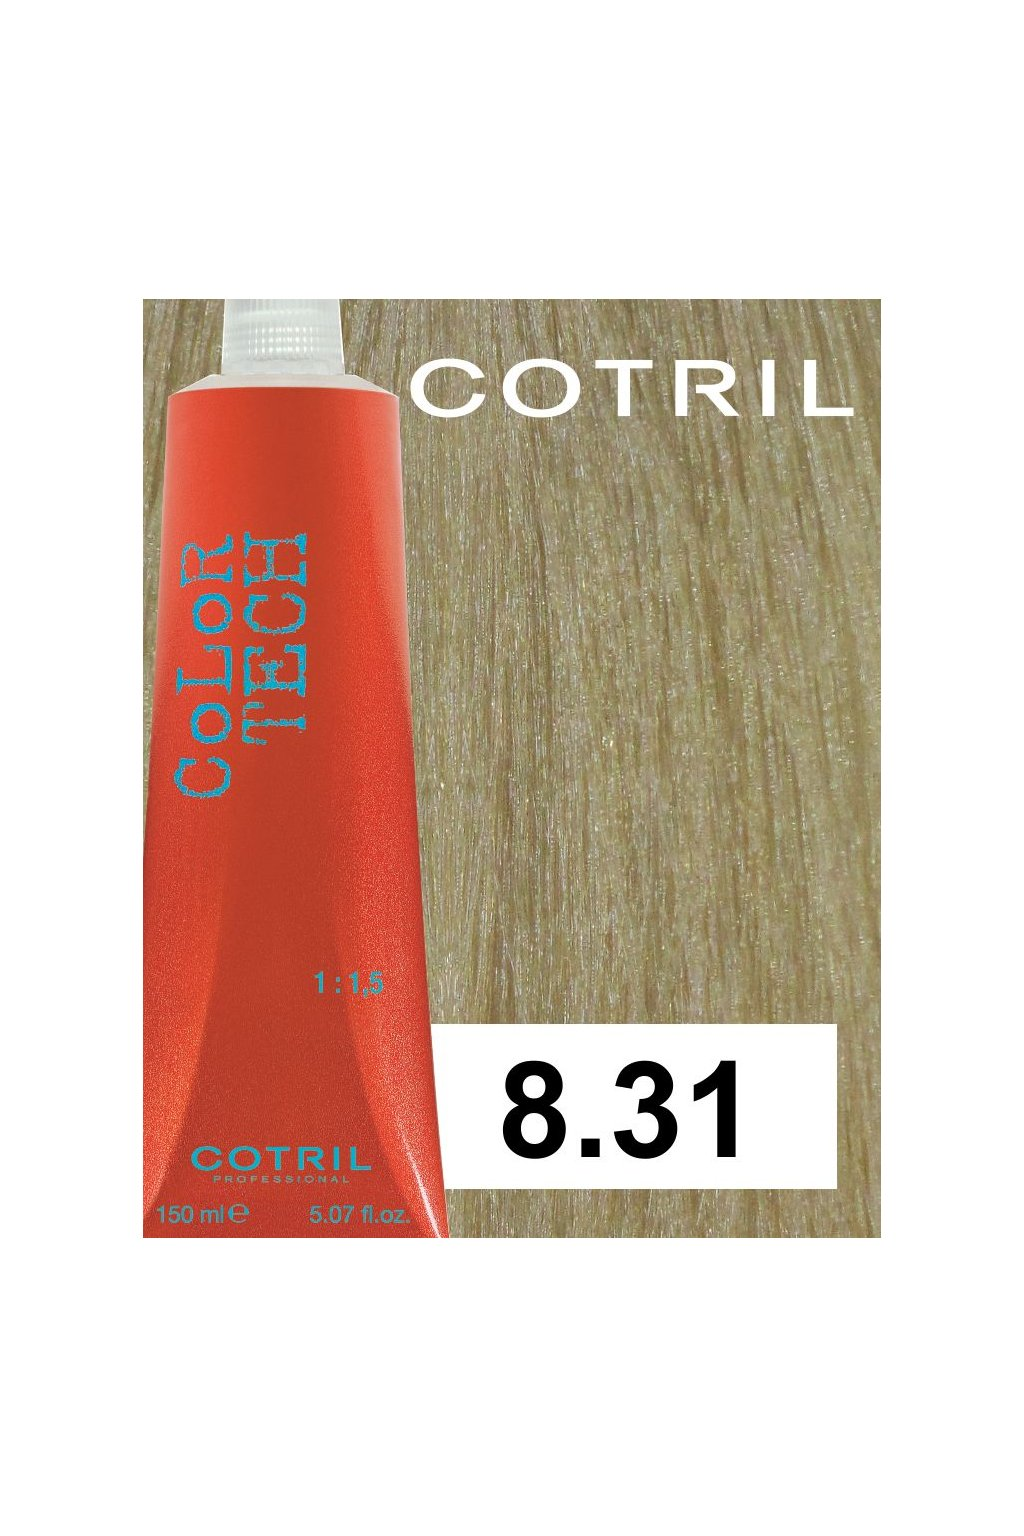 8 31 ct cotril